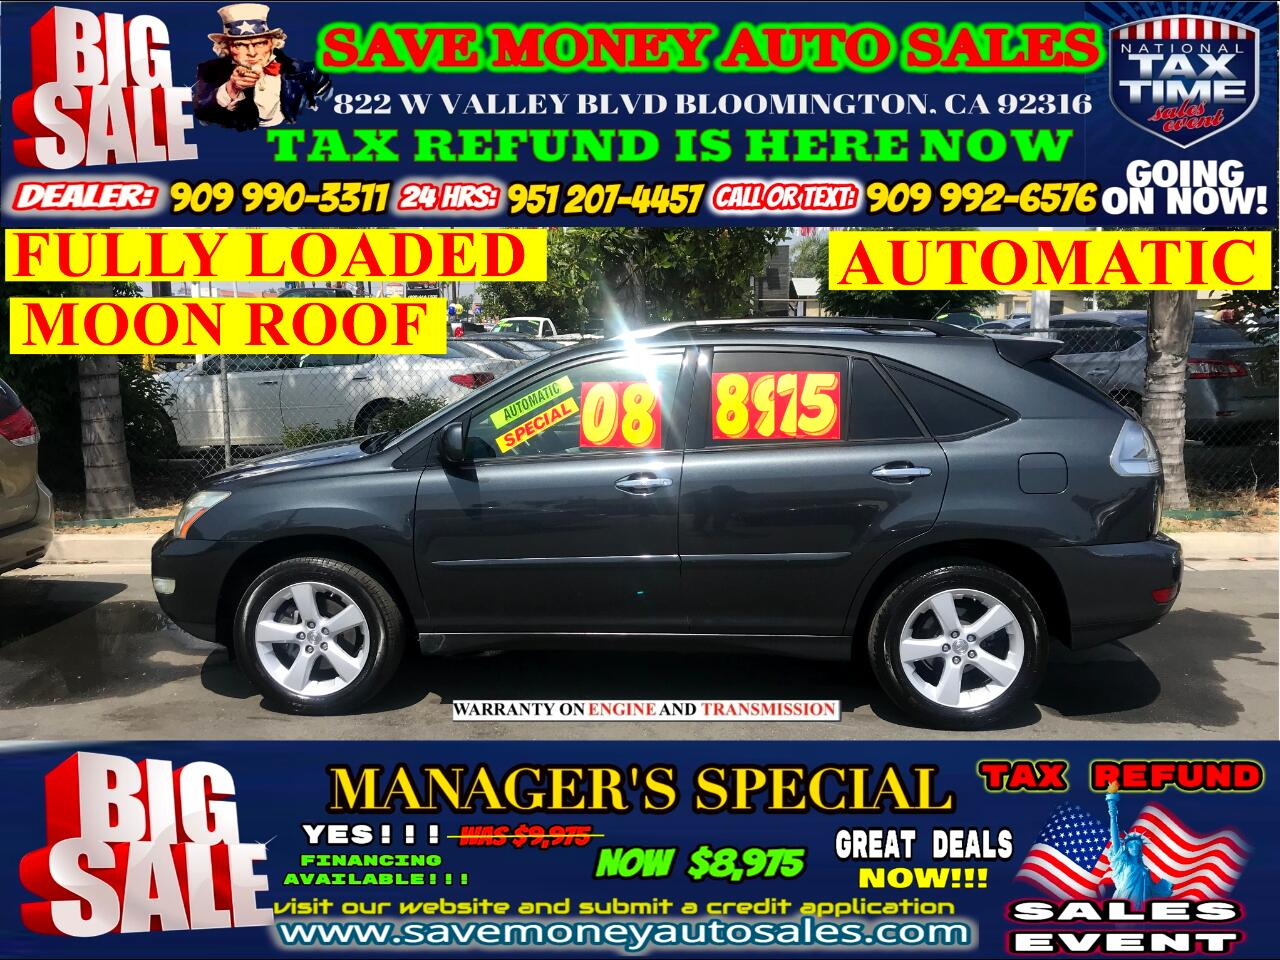 2008 Lexus RX 350 AUTOMATIC> FULLY LOADED> MOON ROOF